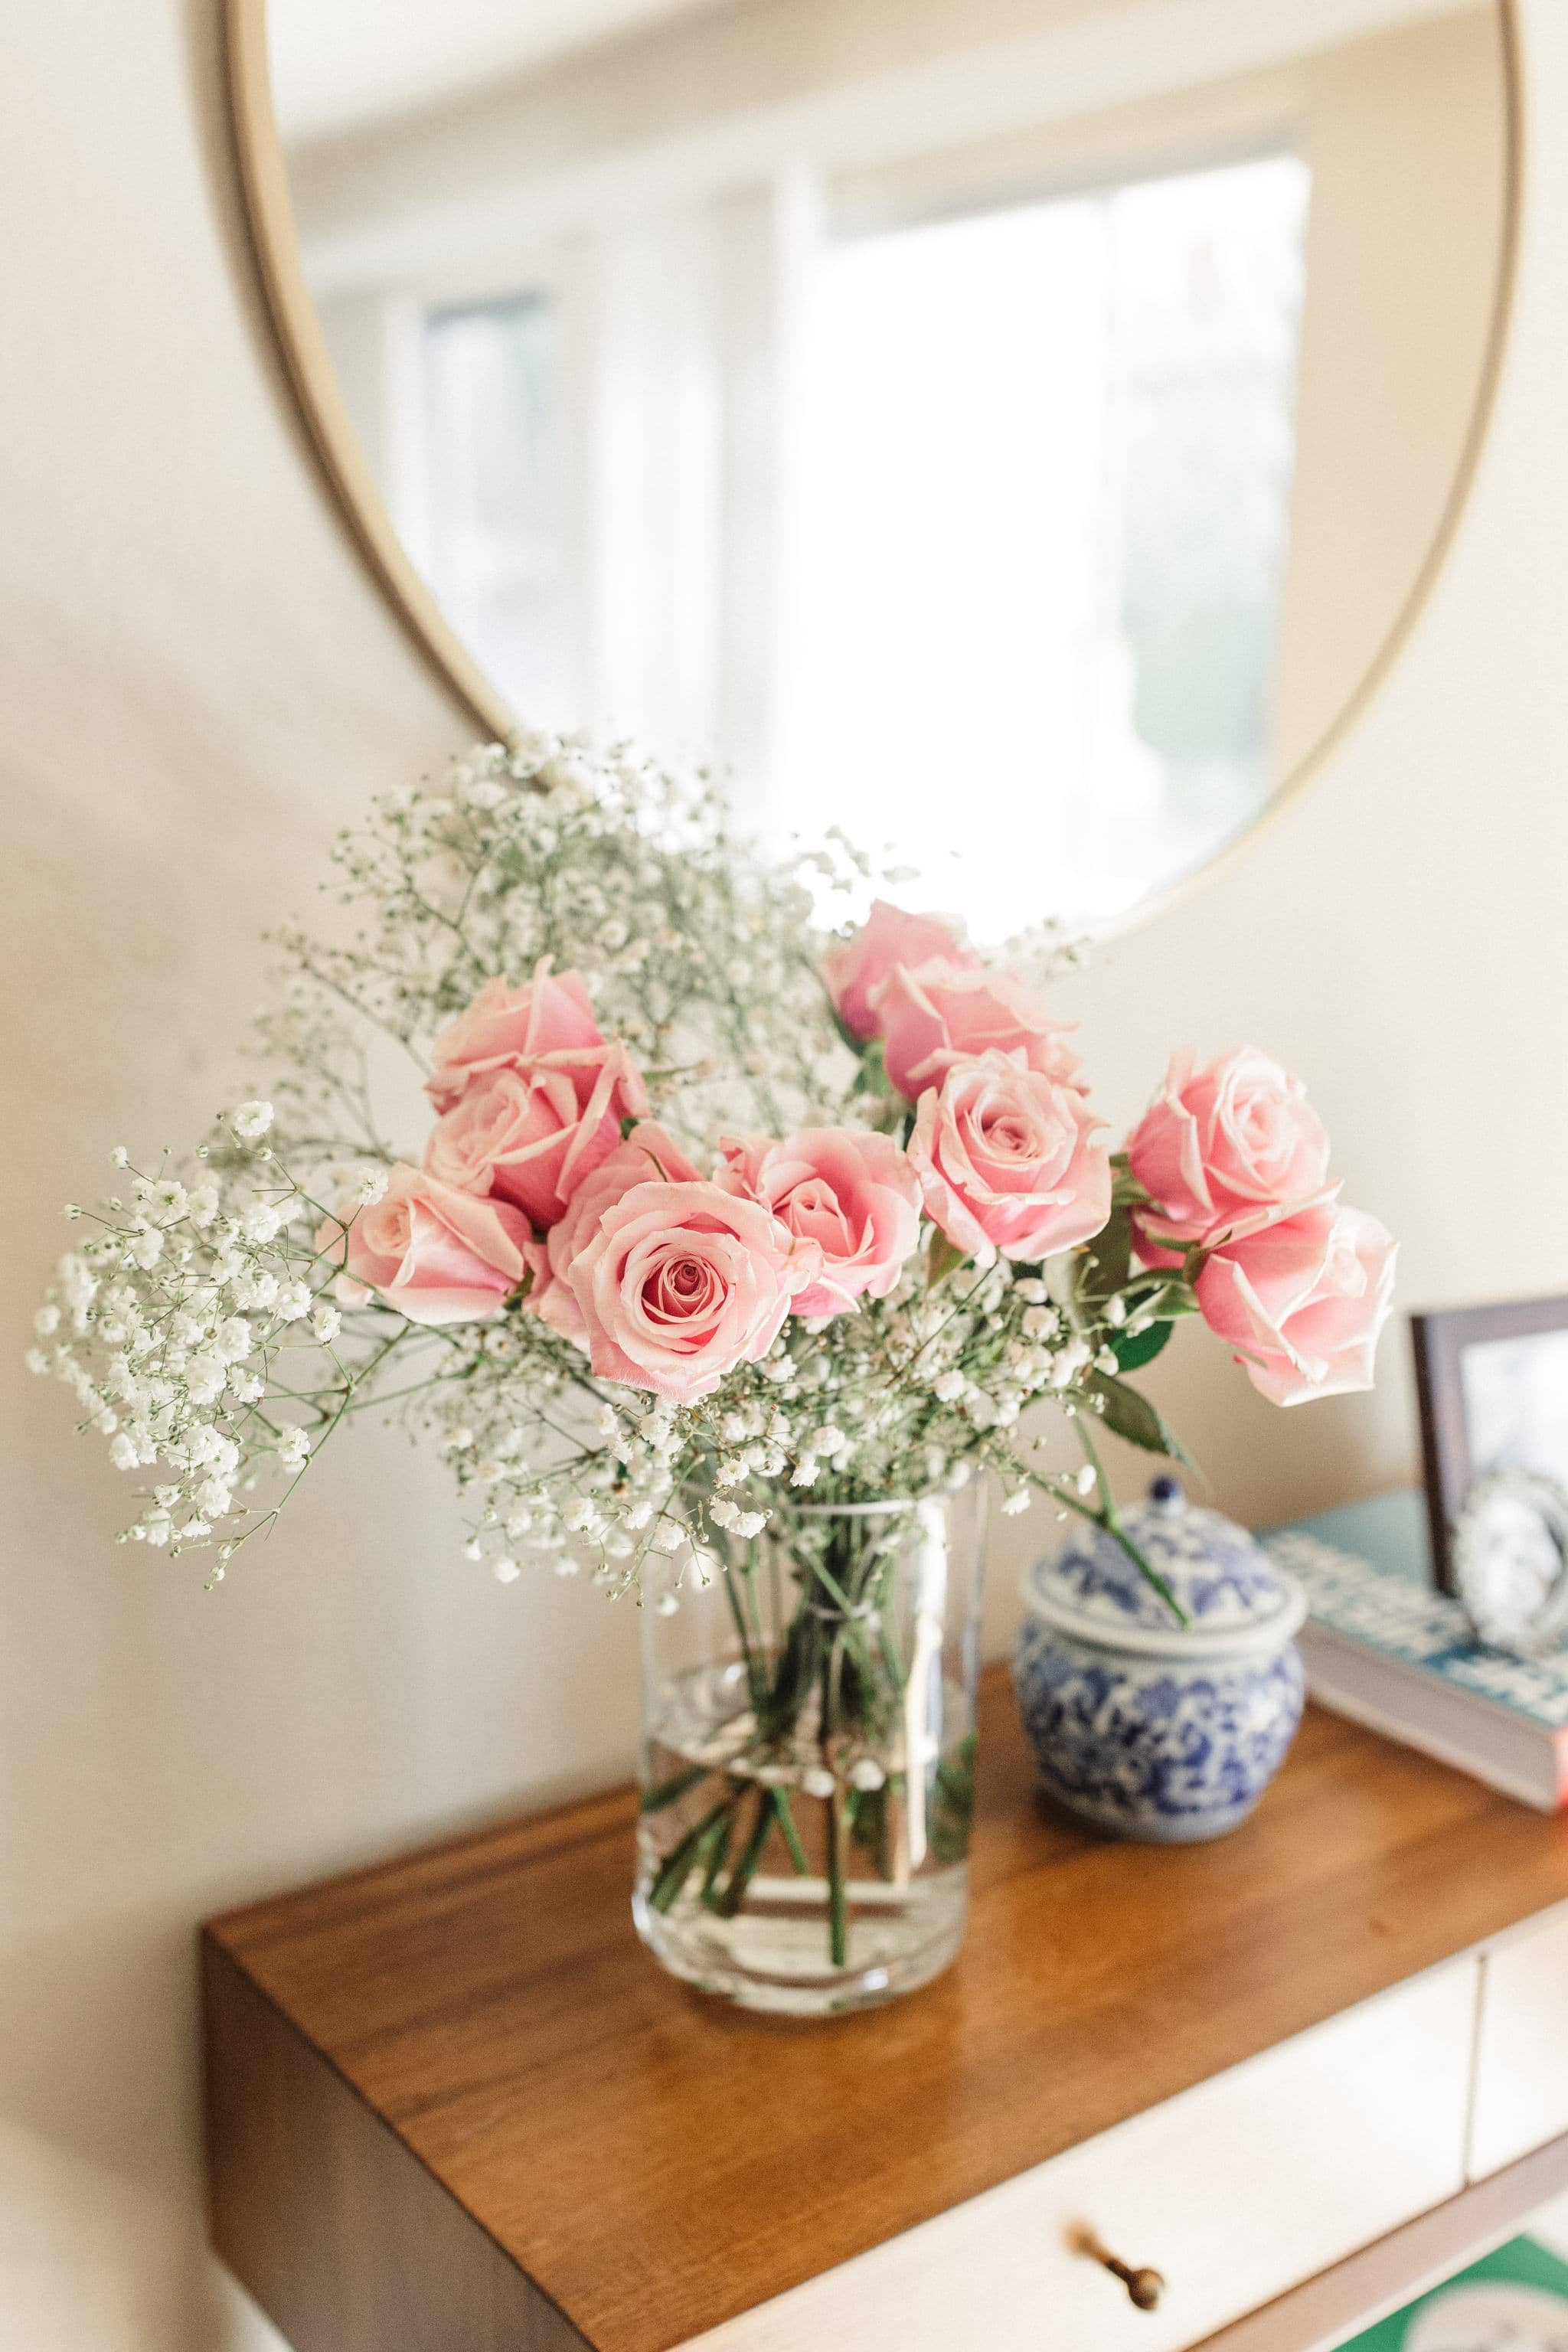 Mother's Day Flowers in vase